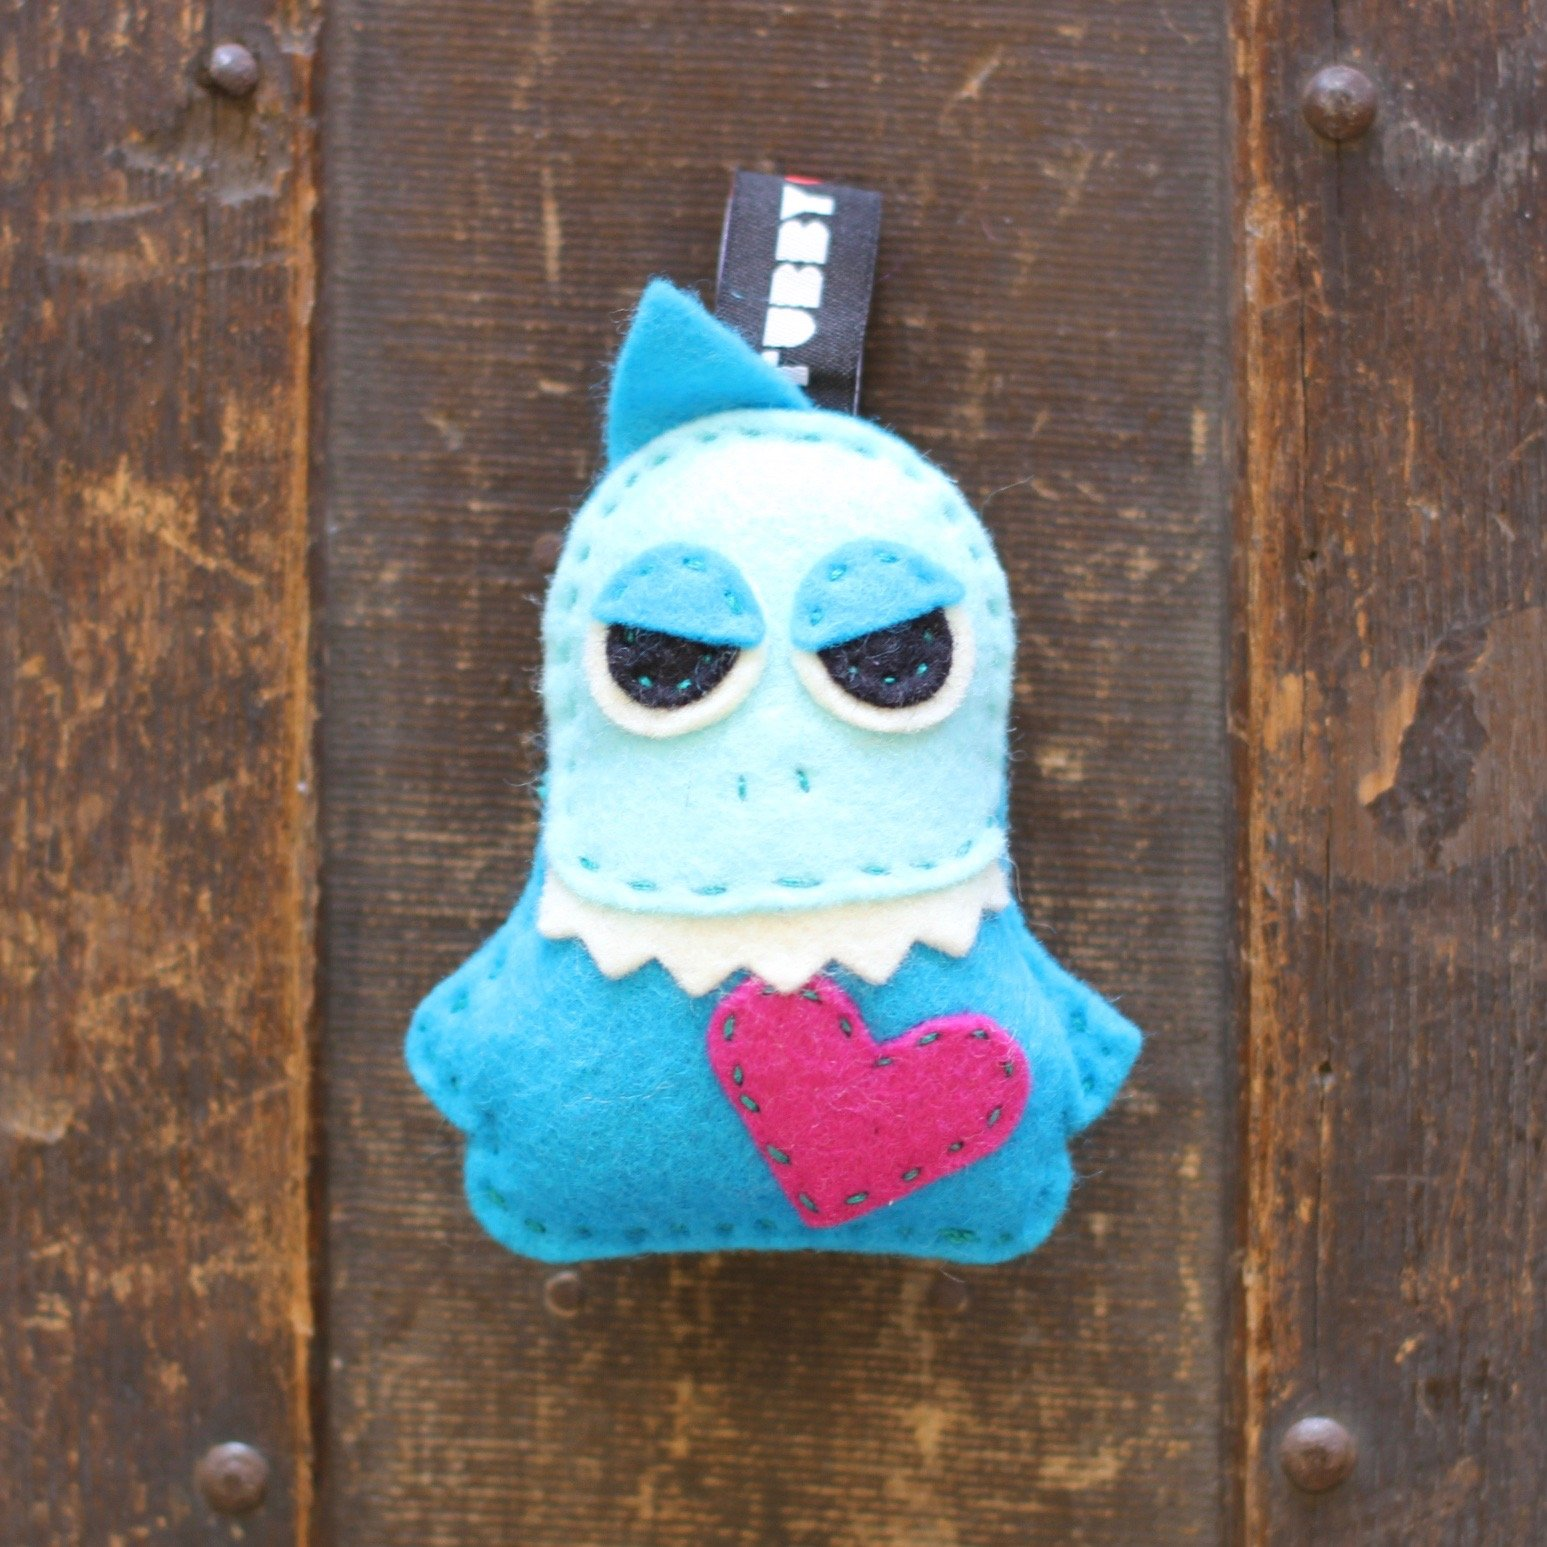 TubbyWubby Stitch & Stuff Critter Kit - Frankie the Shark